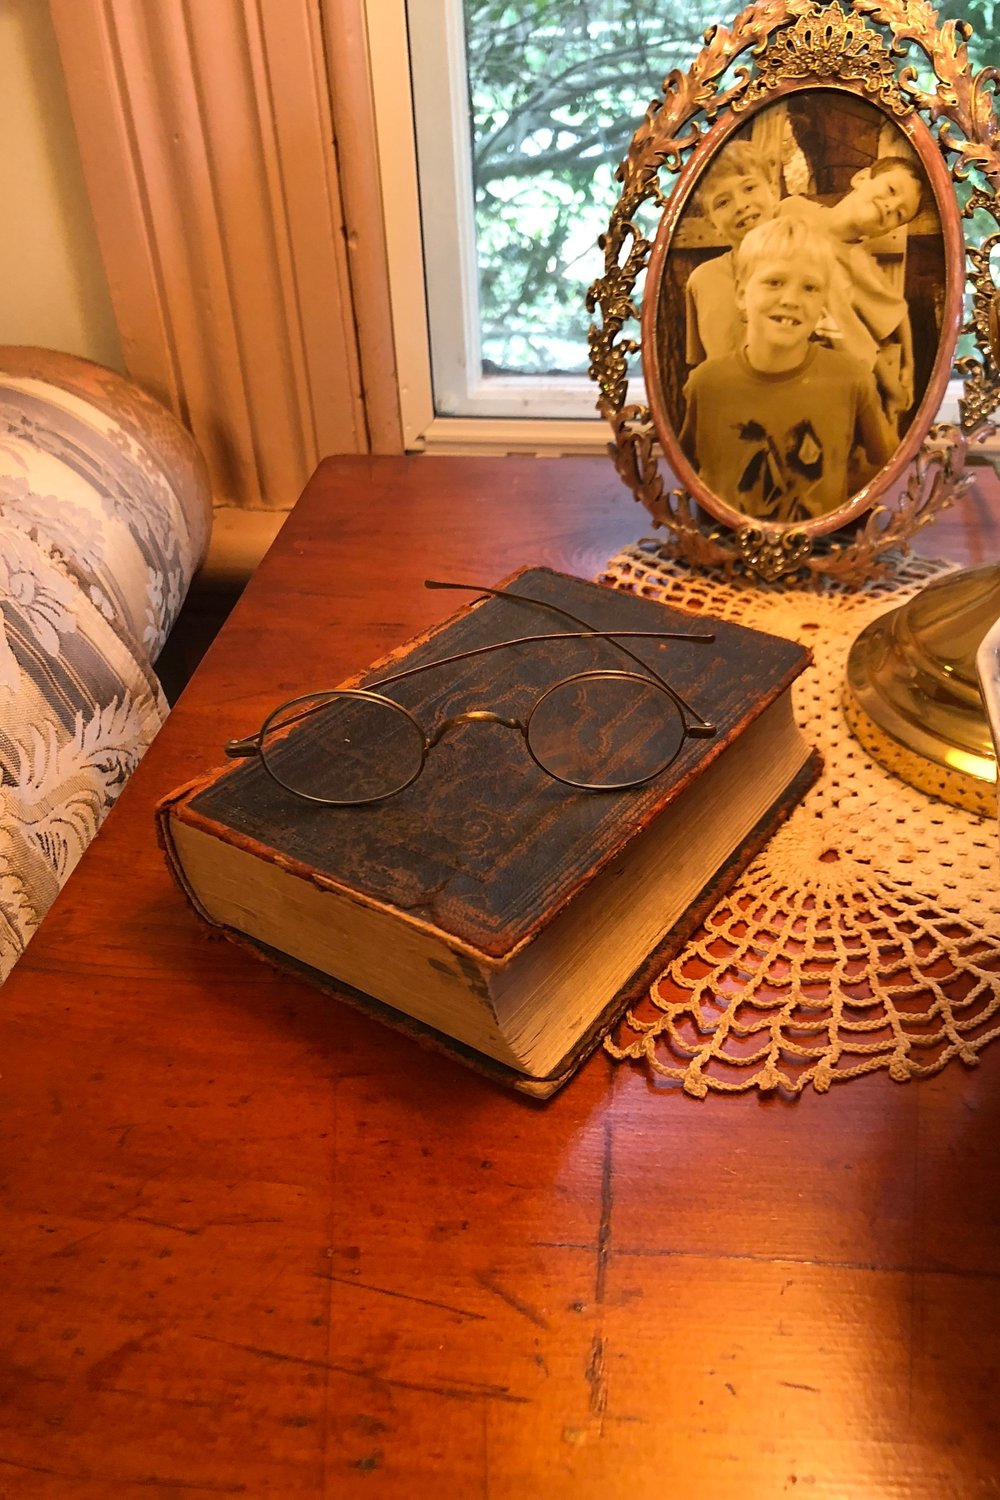 {Pat's grandfather's Bible makes for a unique end table accessory!}